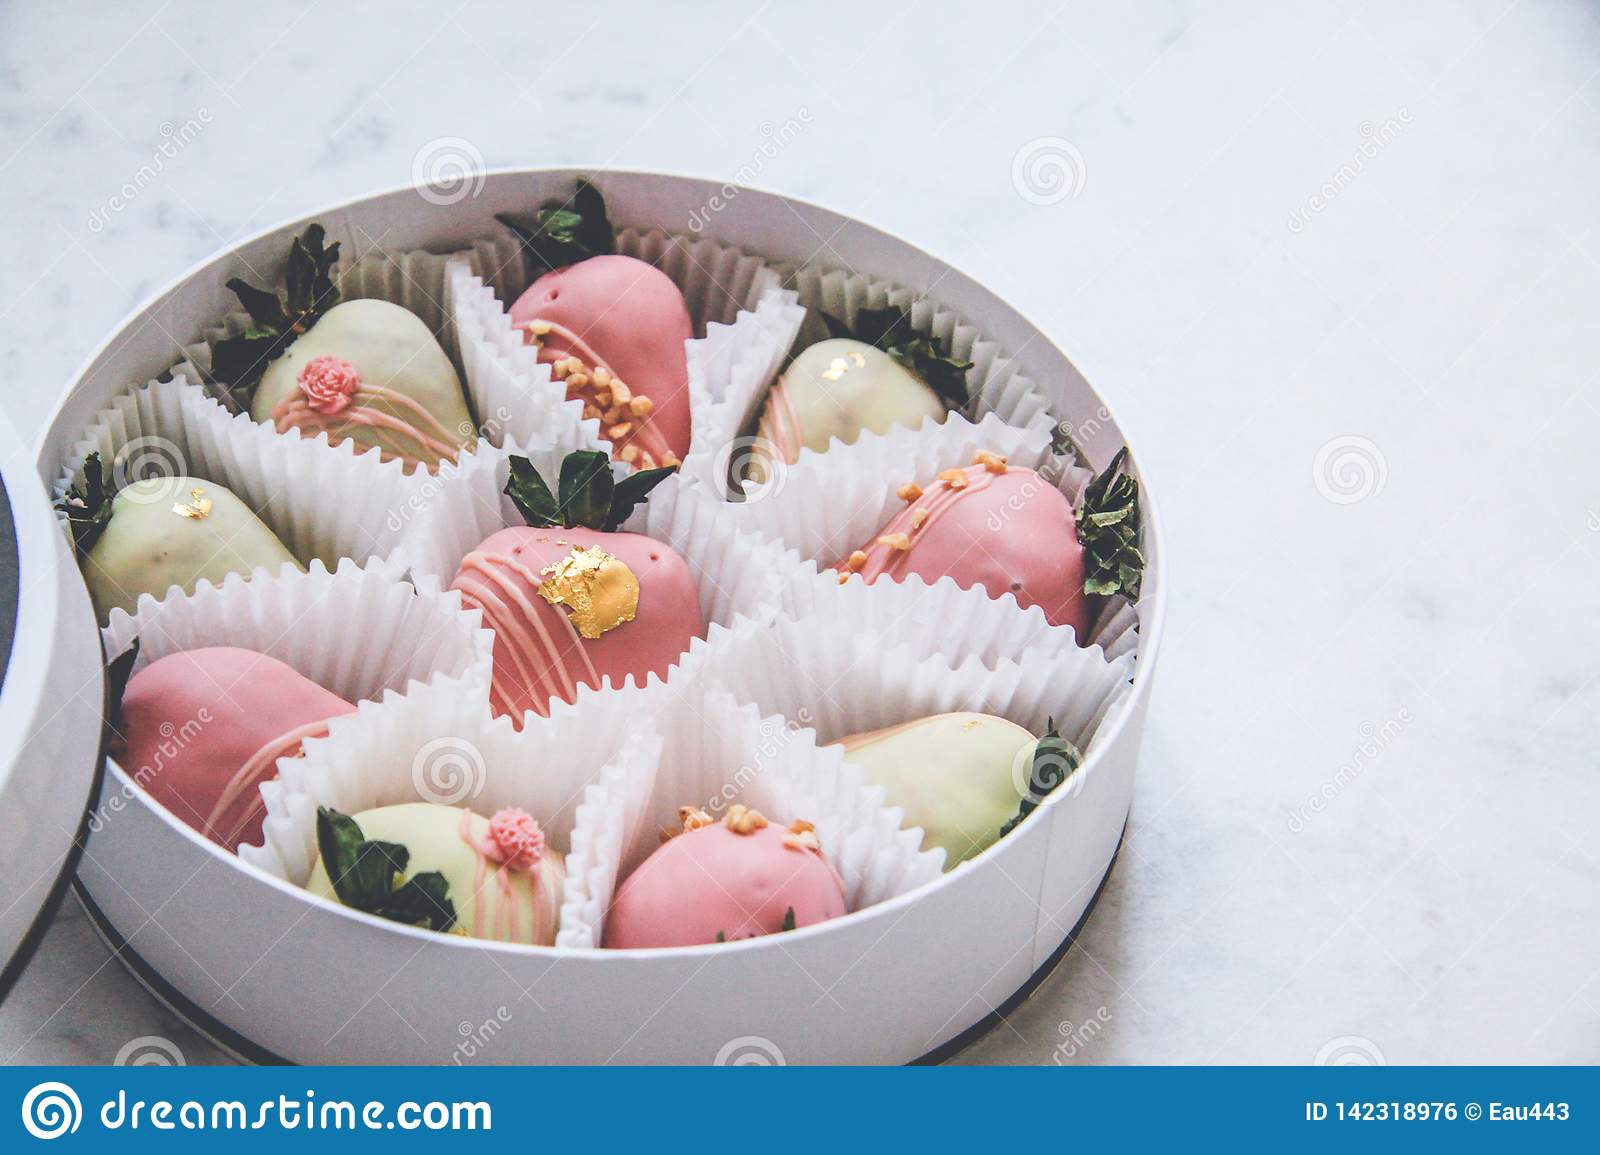 Gourmet Chocolate Covered Strawberries In A Round Gift Box Stock Photo Image Of Indulgence Sweet 142318976